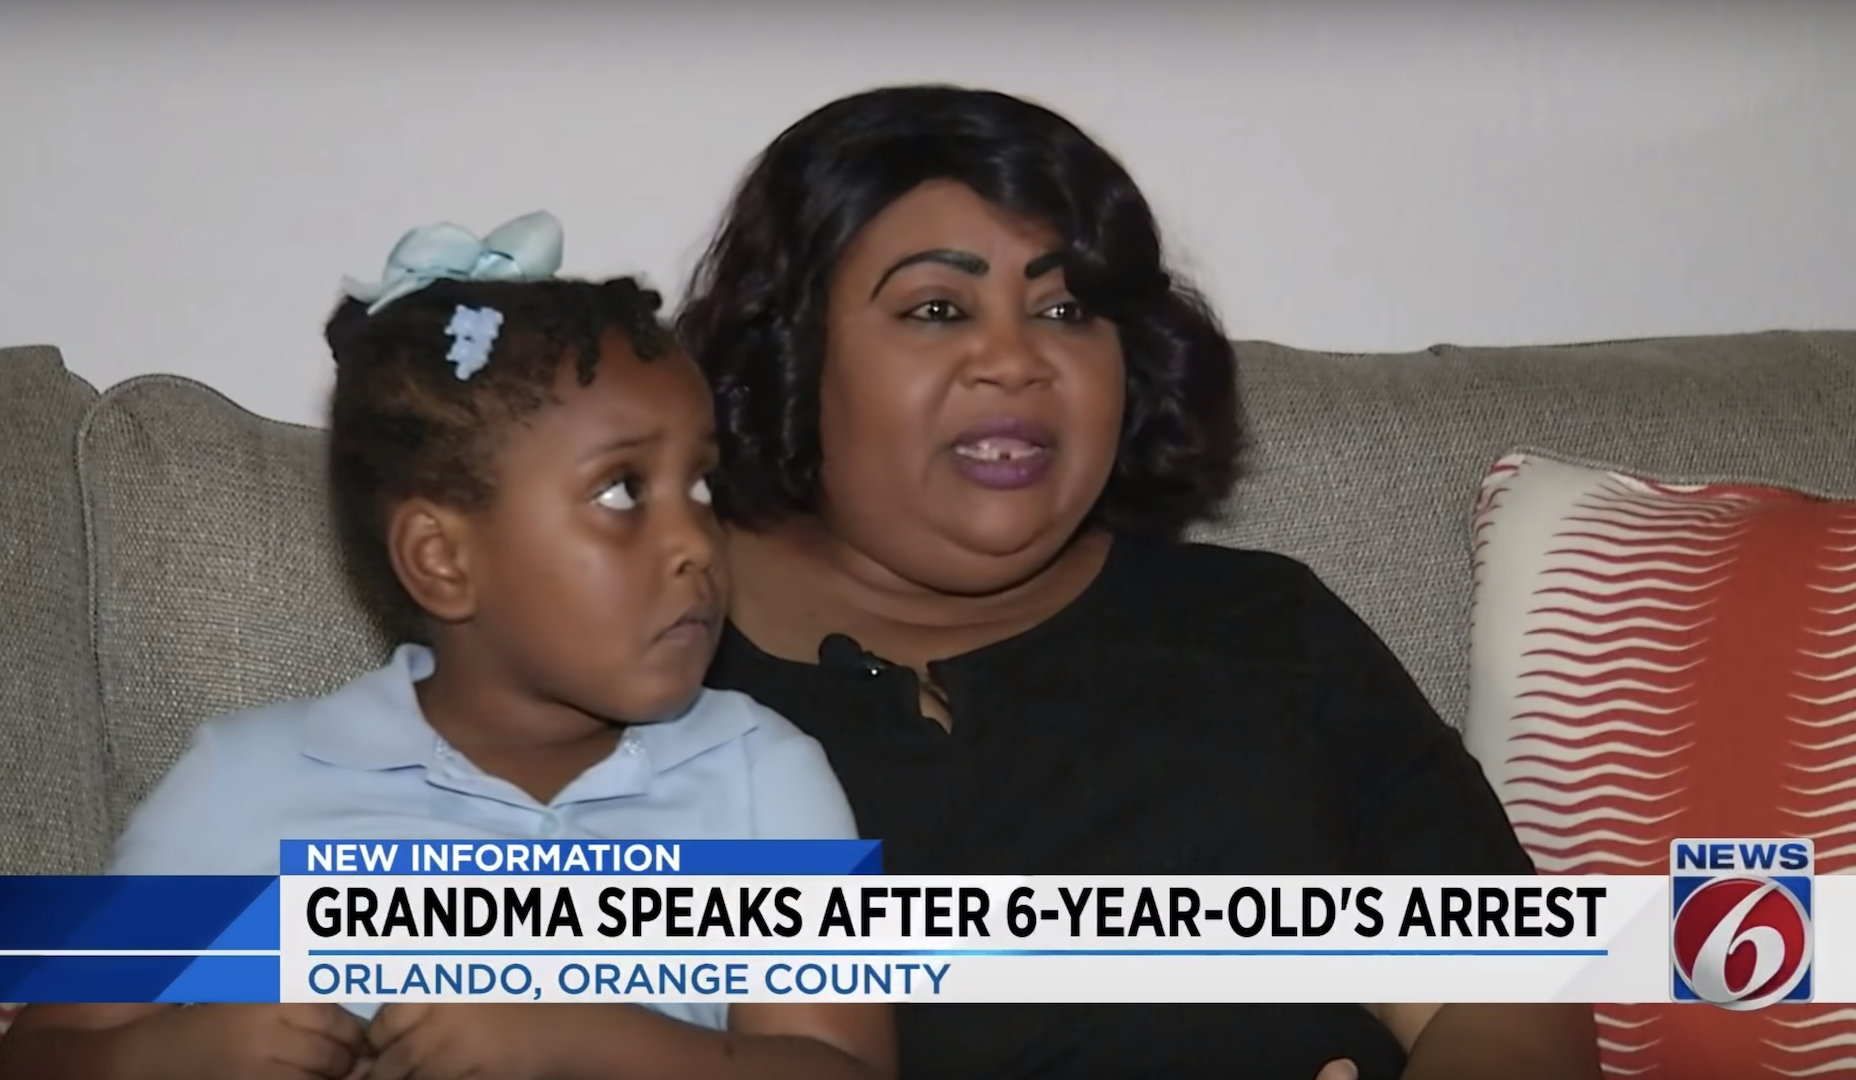 Florida Officer Dennis Turner Fired After Arresting Two 6 Year Old Students At School The Washington Post